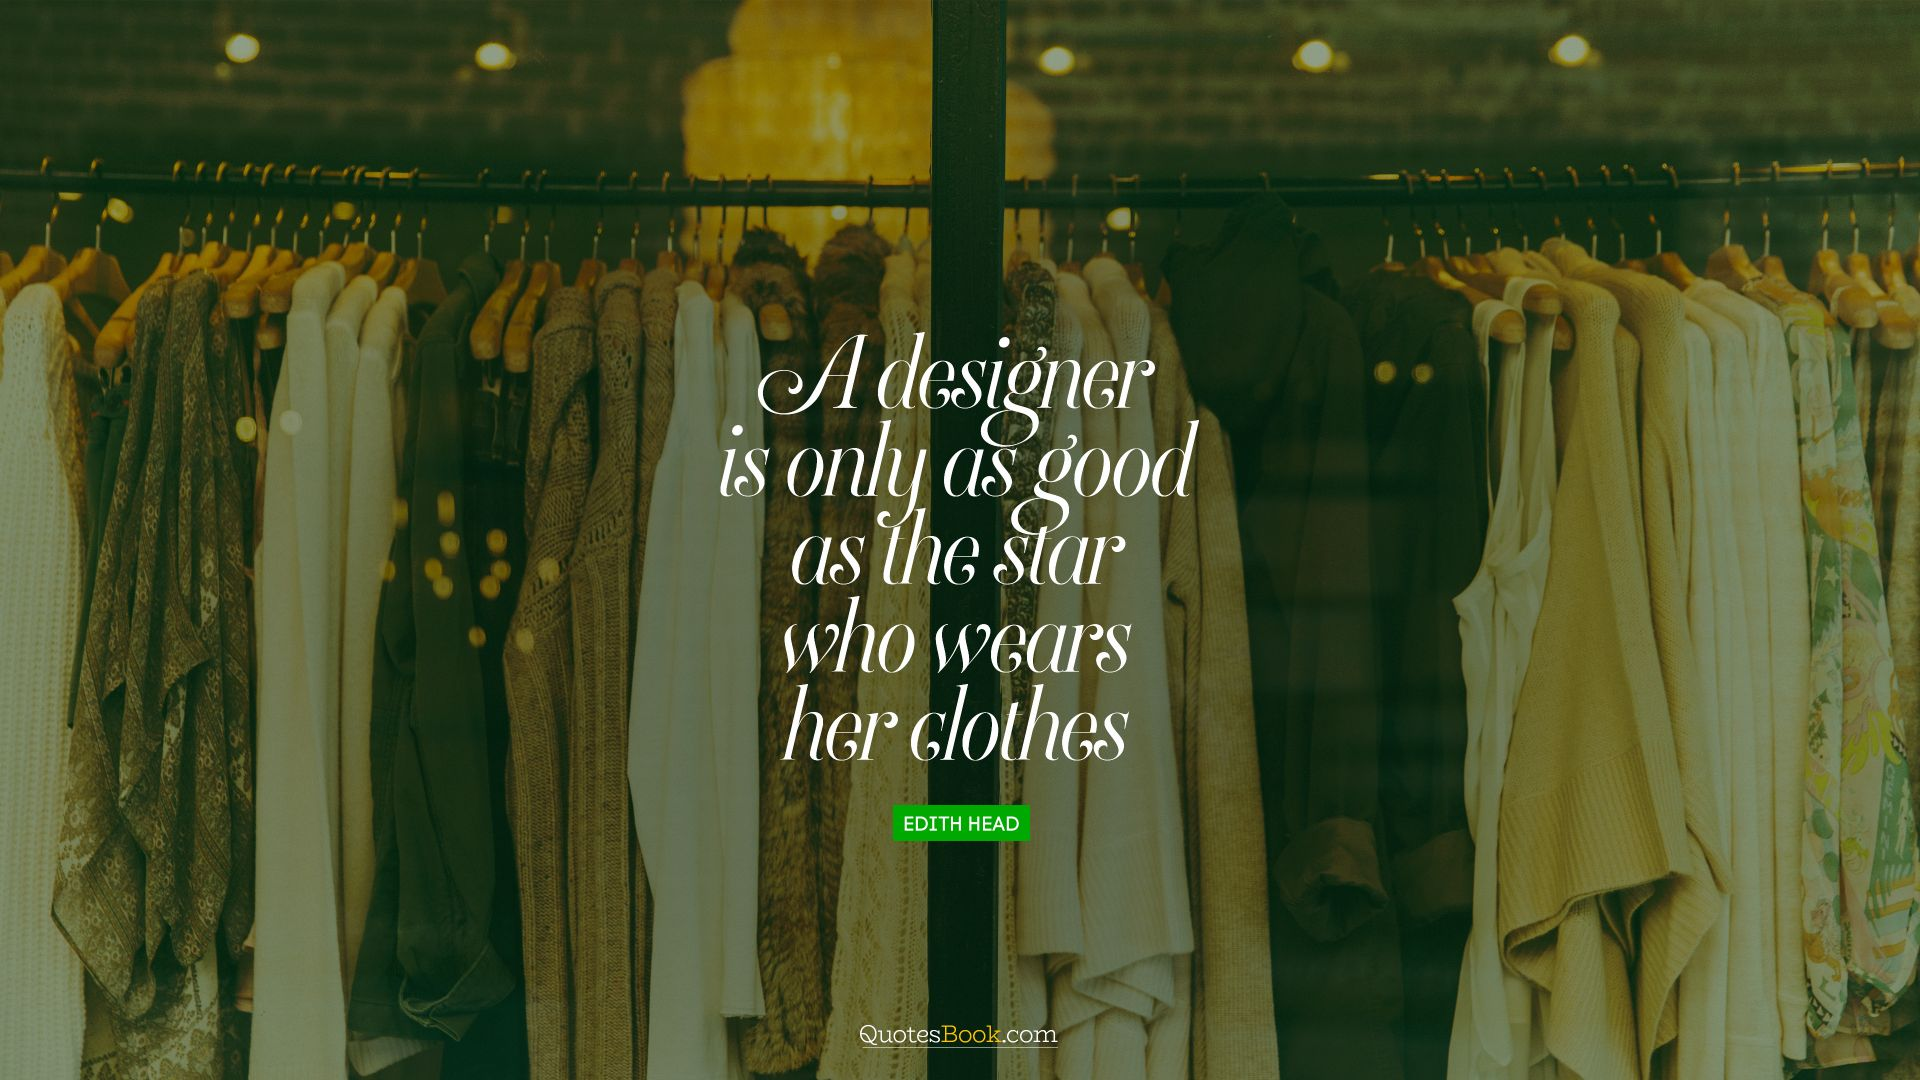 A designer is only as good as the star who wears her clothes. - Quote by Edith Head